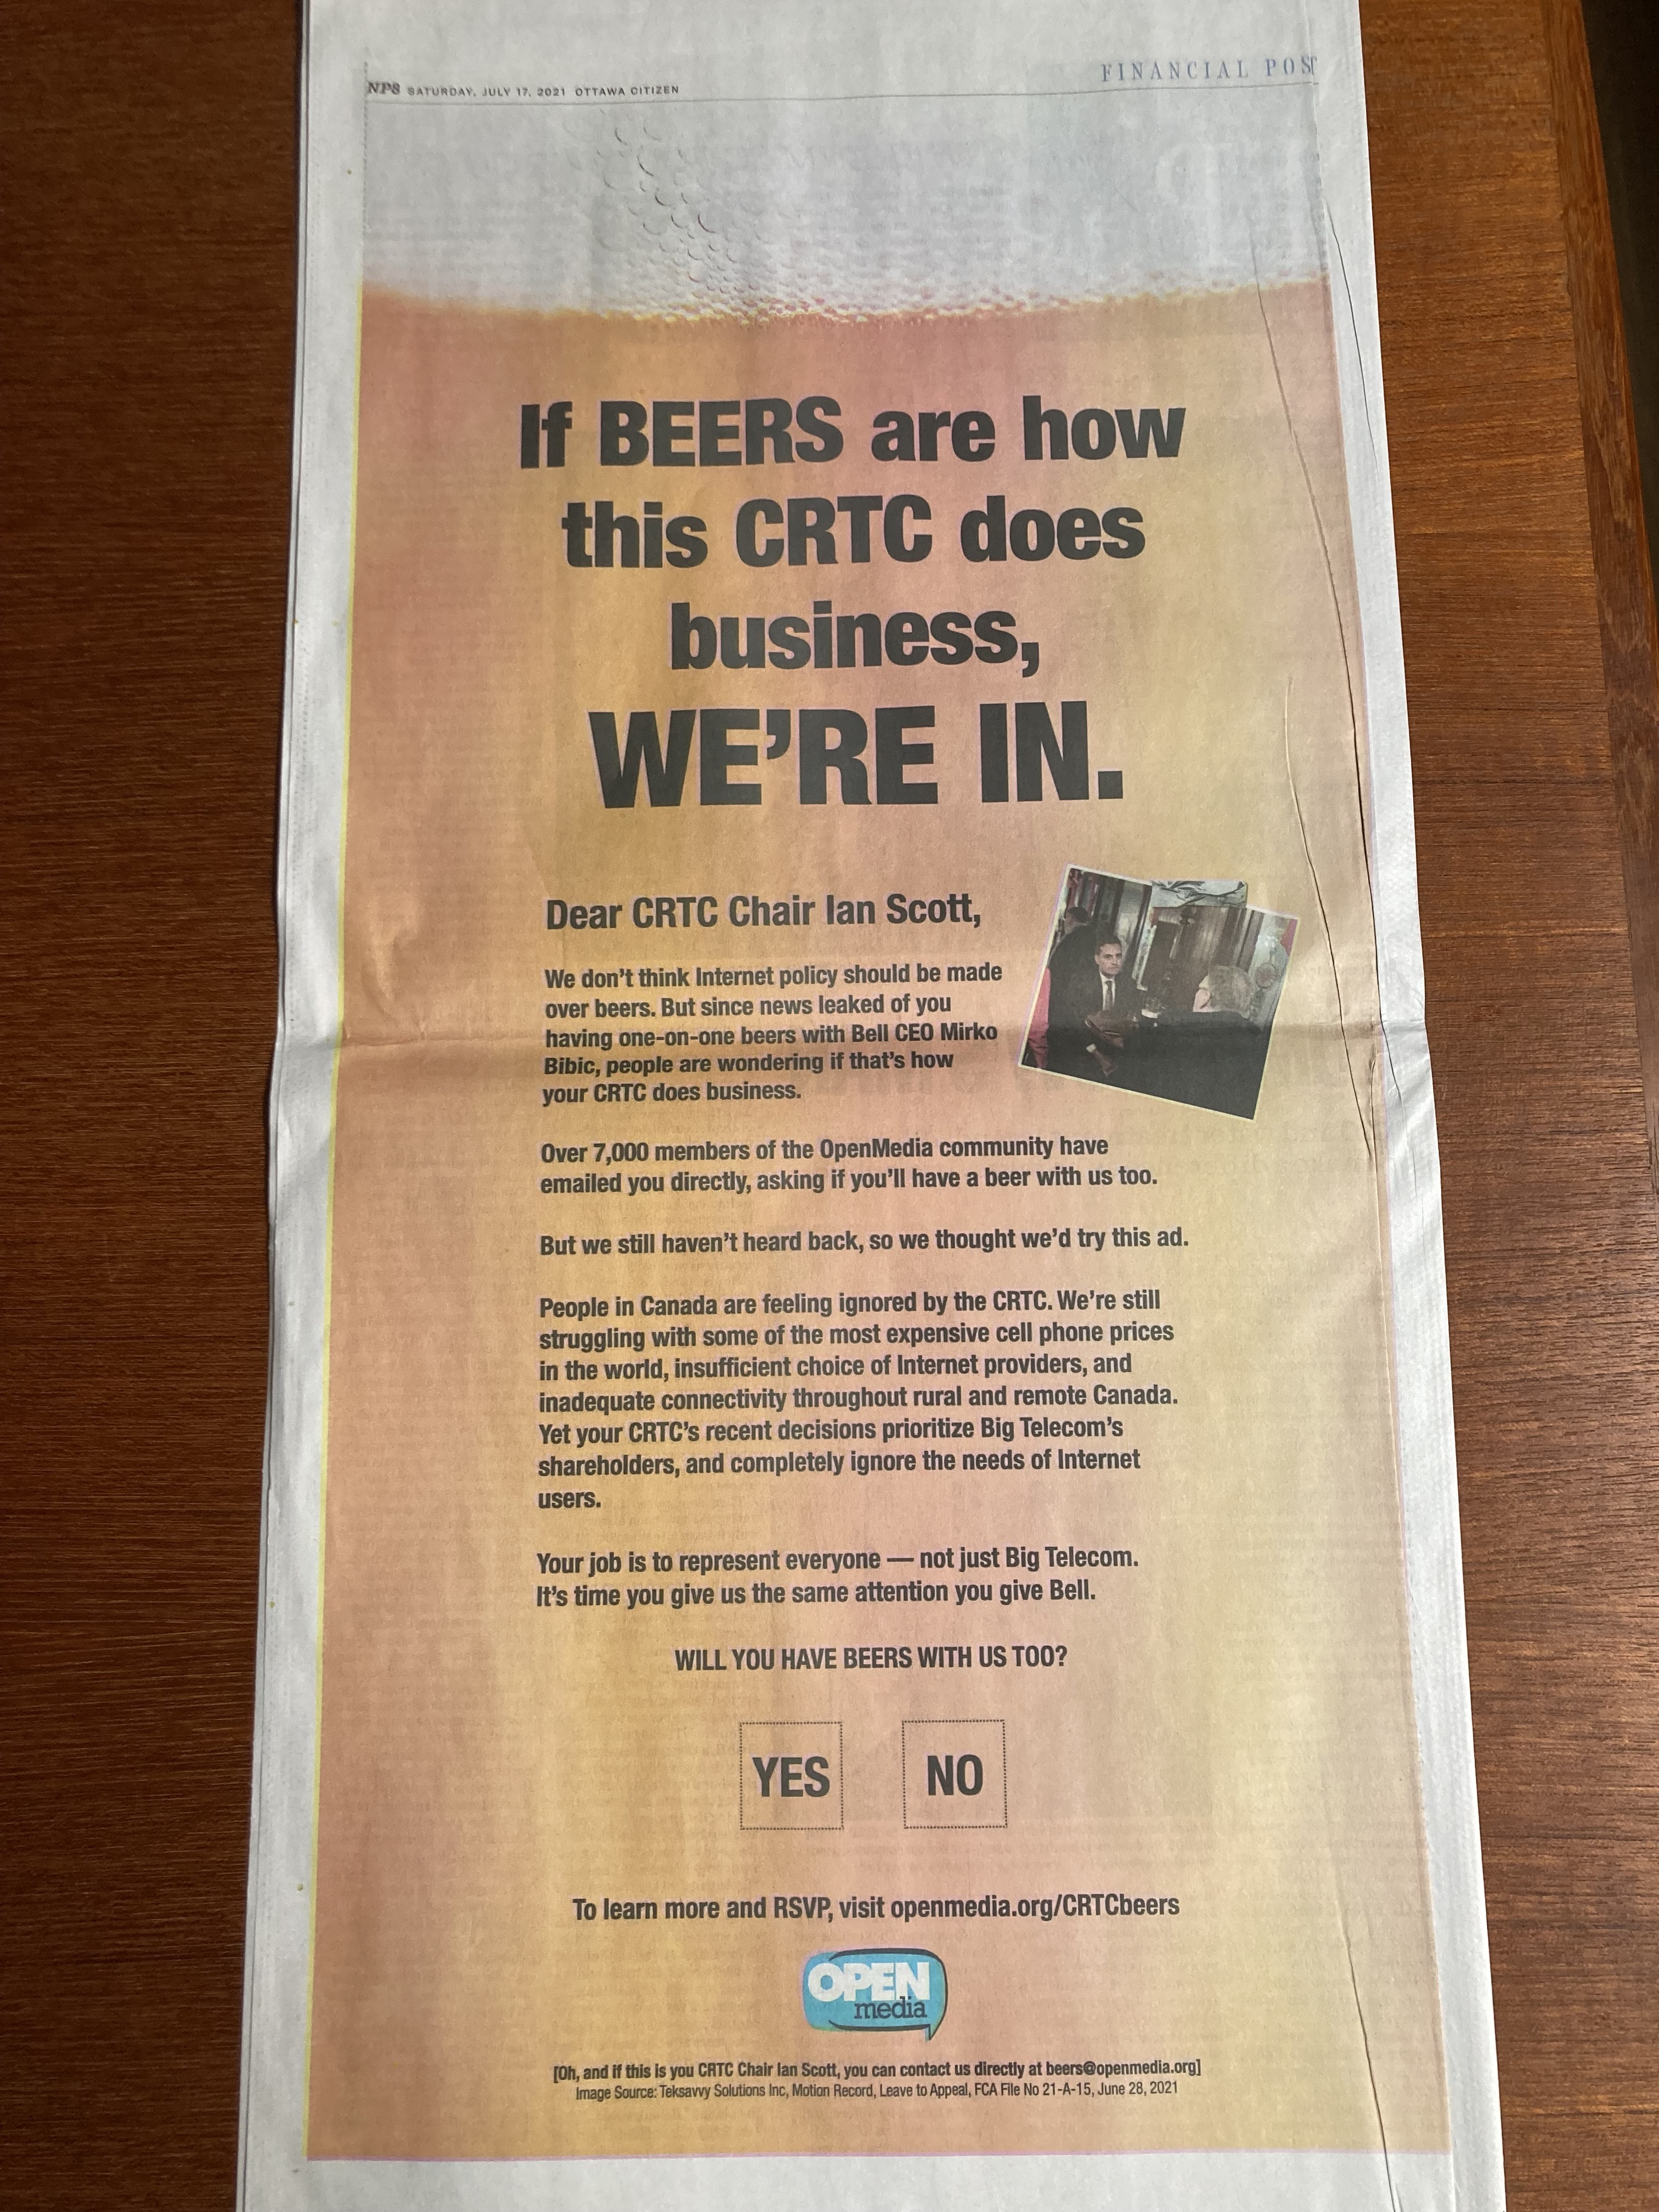 A photo of a full-page ad in the Ottawa Citizen that reads the following: IF BEERS ARE HOW THIS CRTC DOES BUSINESS, WE'RE IN. Dear CRTC Chair Ian Scott, We don't think internet policy should be made over beers. But since news leaked of you having one-on-one beers with Bell CEO Mirko Bibic, people are wondering if that's how your CRTC does business. Over 7,000 members of the OpenMedia community have emailed you directly, asking if you'll have a beer with us too. But we still haven't heard back, so we thought we'd try this ad. People in Canada are feeling ignored by the CRTC. We're still struggling with some of the most expensive cell phone prices in the world, insufficient choice of internet providers, and inadequate connectivity throughout rural and remote Canada. Yet your CRTC's recent decisions prioritize Big Telecom's shareholders, and completely ignore the needs of internet users. Your job is to represent everyone — not just Big Telecom. It's time you give us the same attention you give Bell. WILL YOU HAVE BEERS WITH US TOO? [ ] YES [ ] NO To learn more and RSVP, visit openmedia.org/crtcbeers.